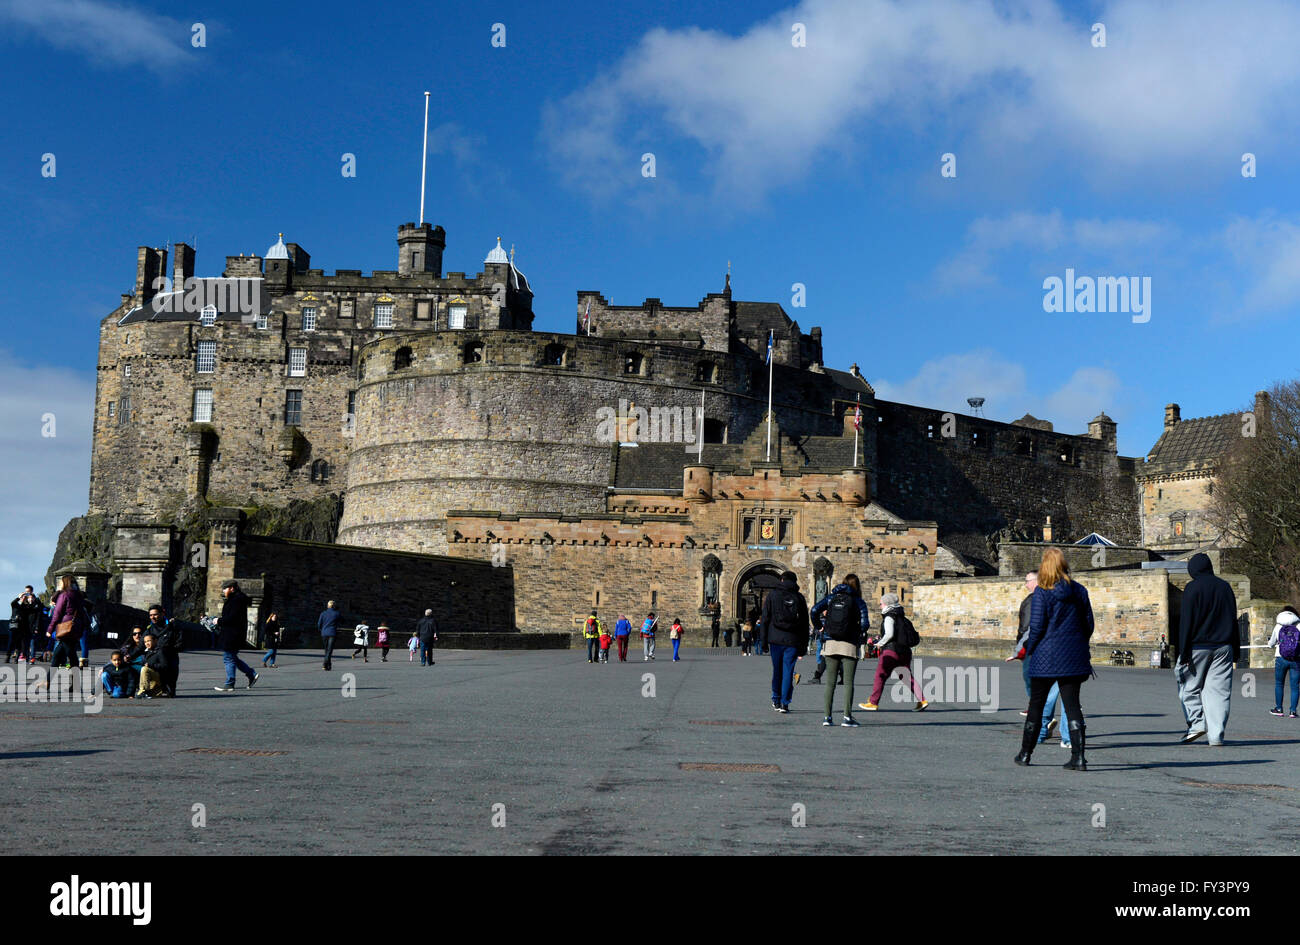 stock edinburgh castle - photo #17